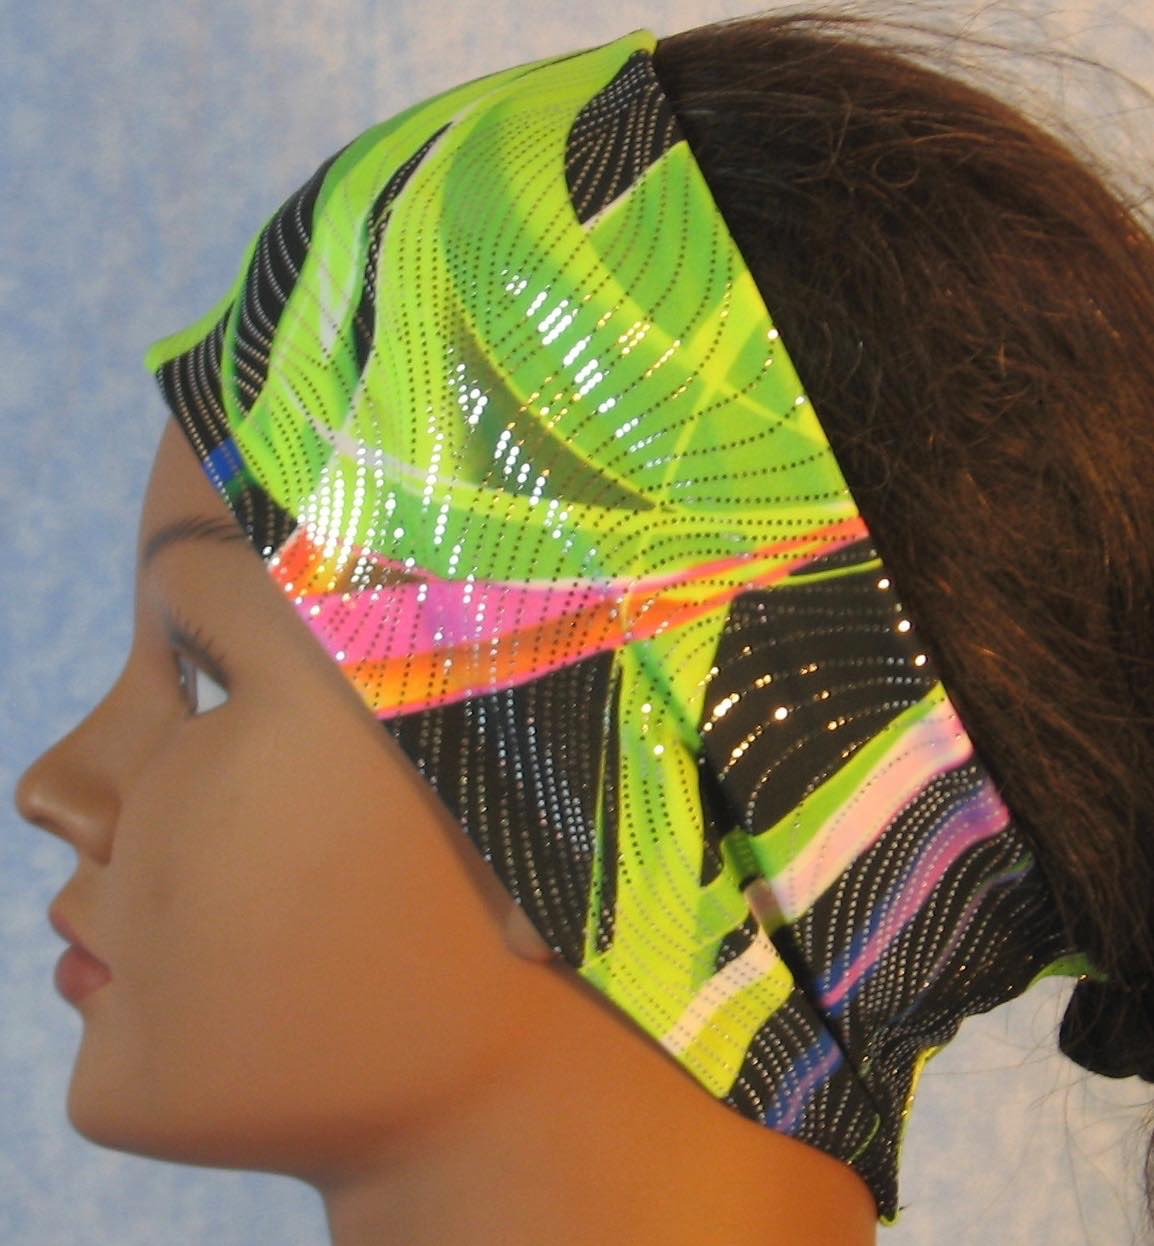 Headband-Green Black Waves With Silver-left